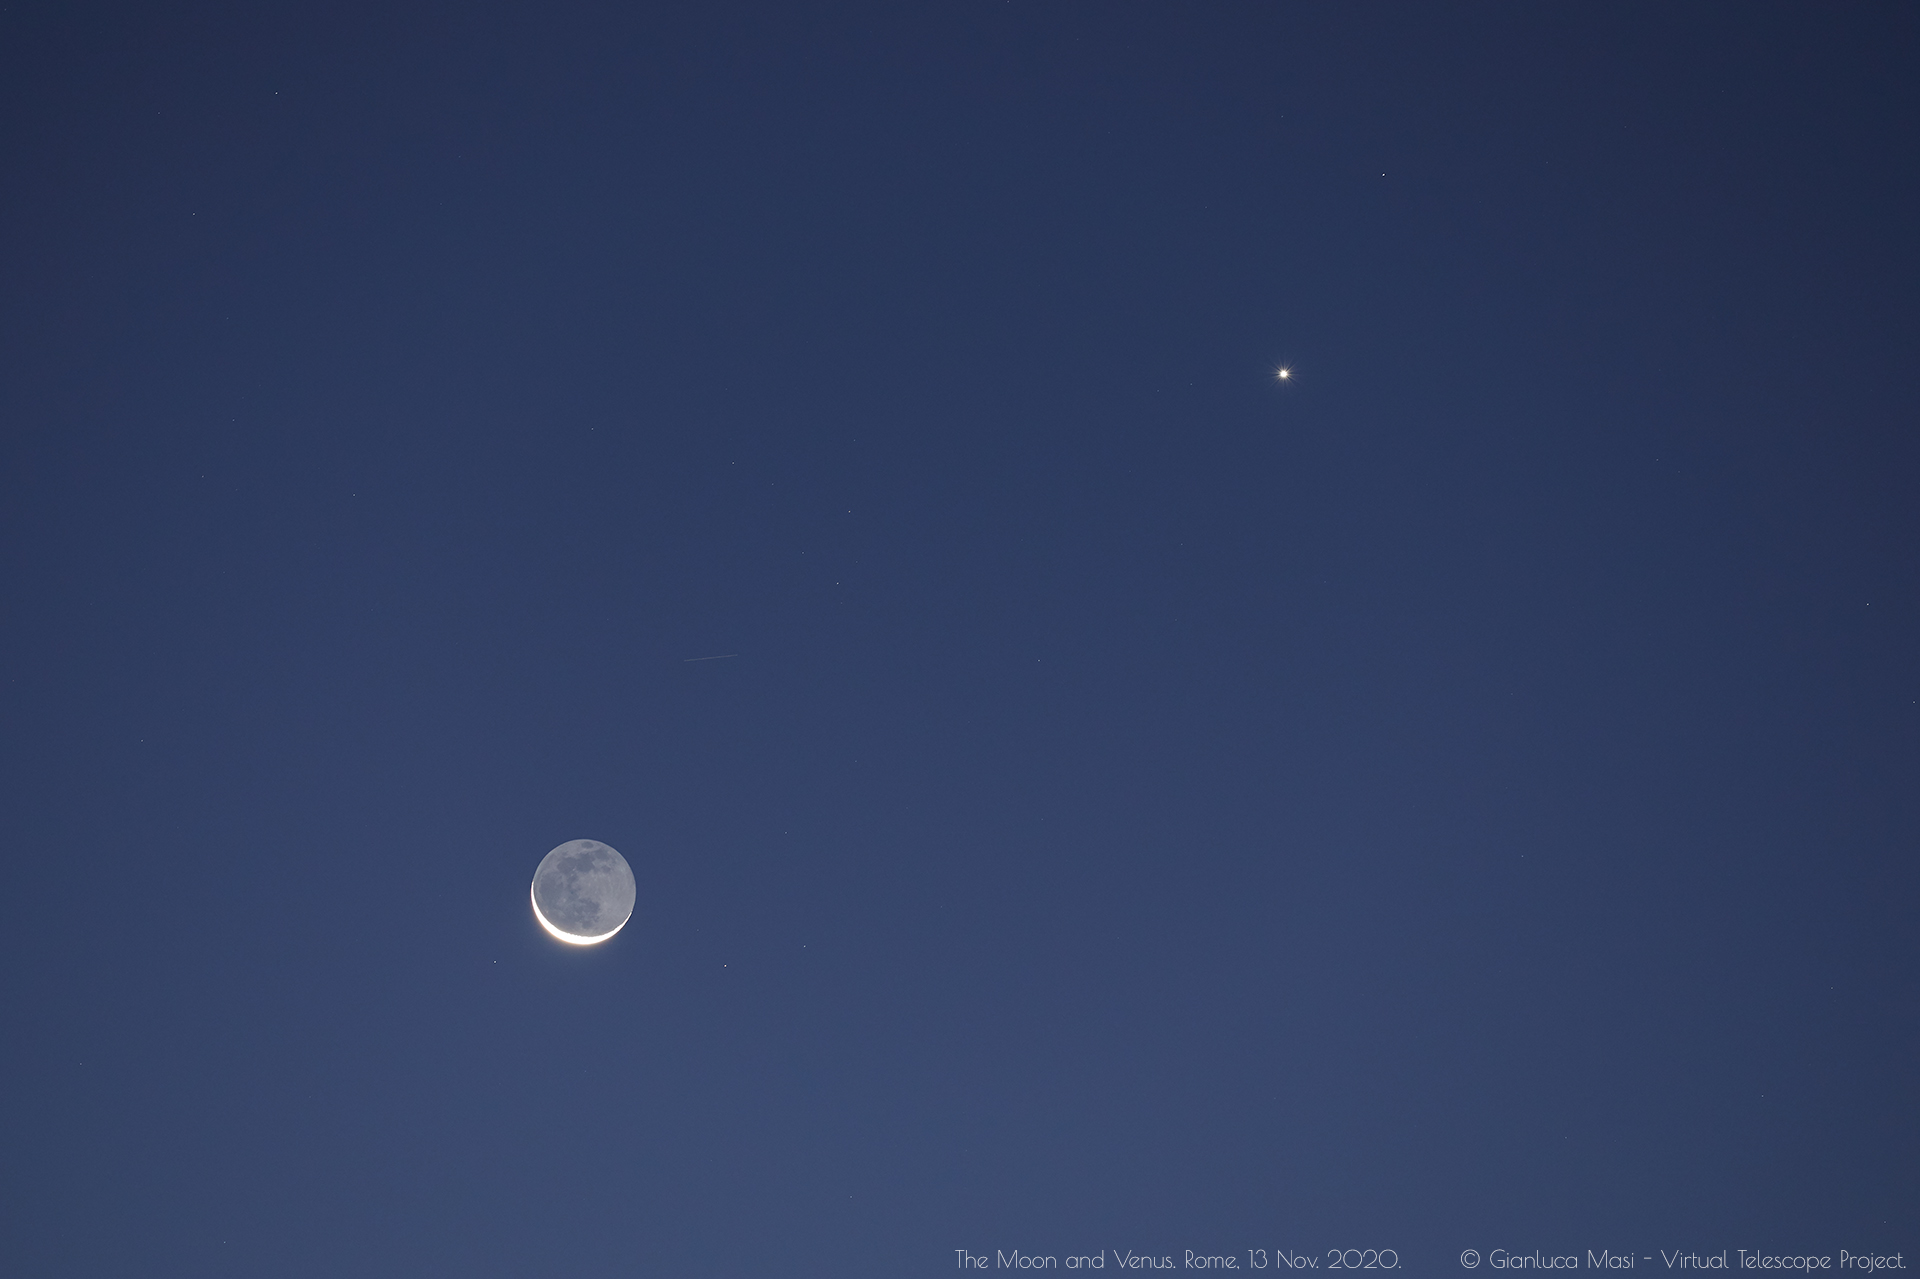 The Moon and Venus. 13 Nov. 2020.